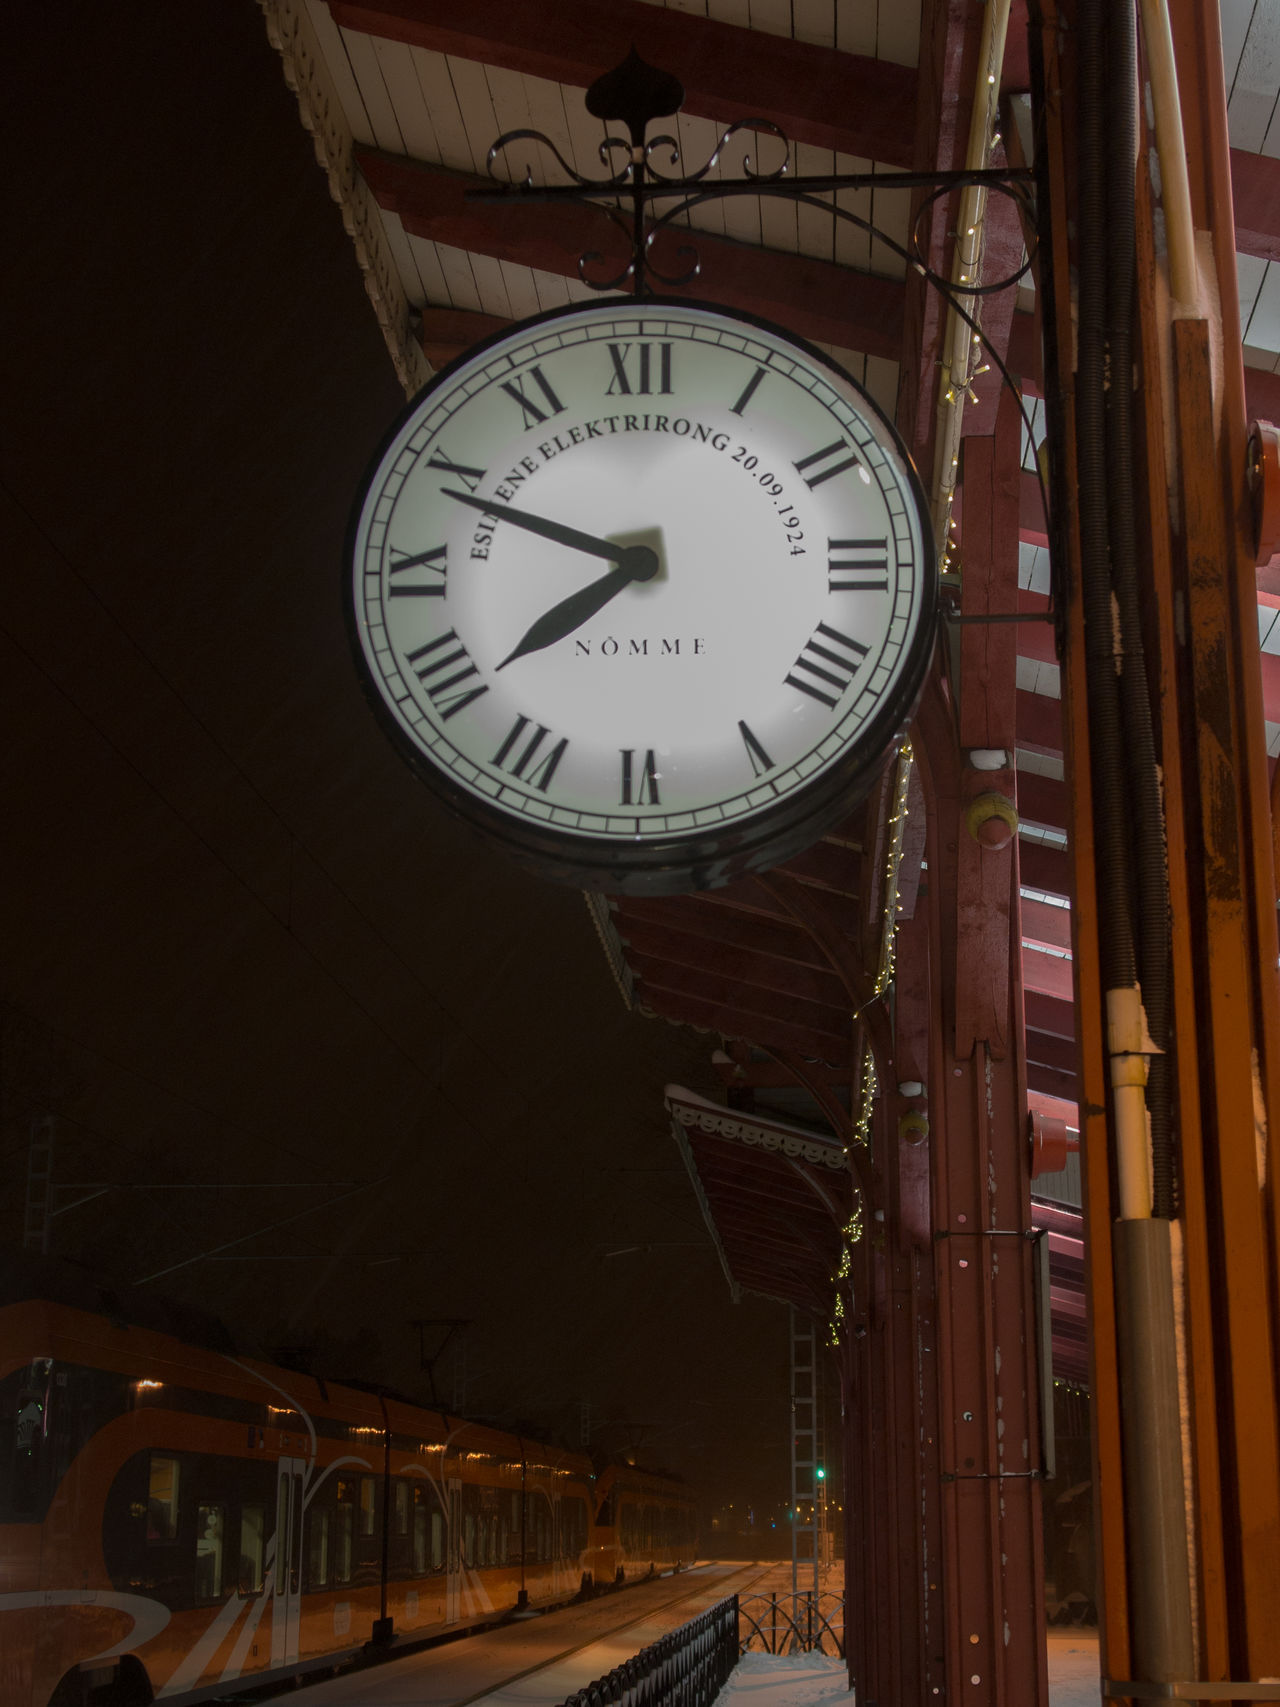 Clock Clock Face Hour Hand Instrument Of Time Minute Hand No People Nõmme Outdoors Station Clock Tallinn Time Train Train Station Transportation